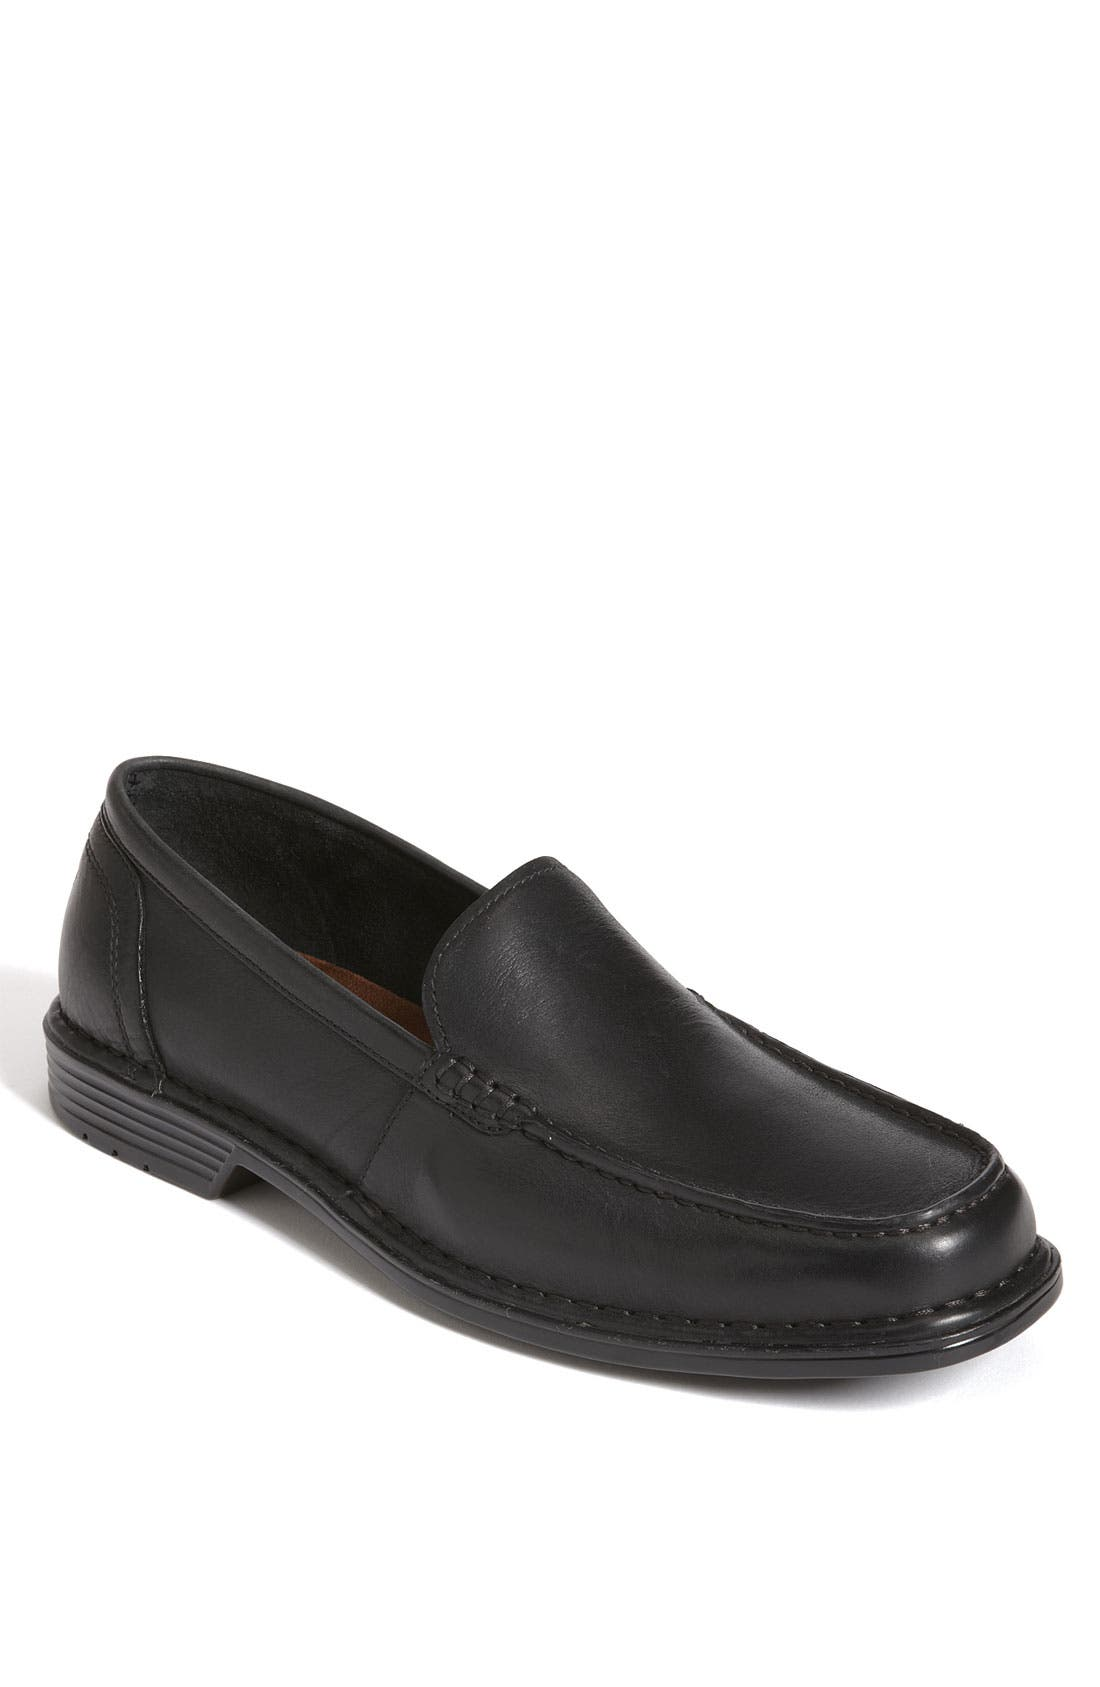 Main Image - Rockport 'Washington Square' Venetian Loafer (Online Only)